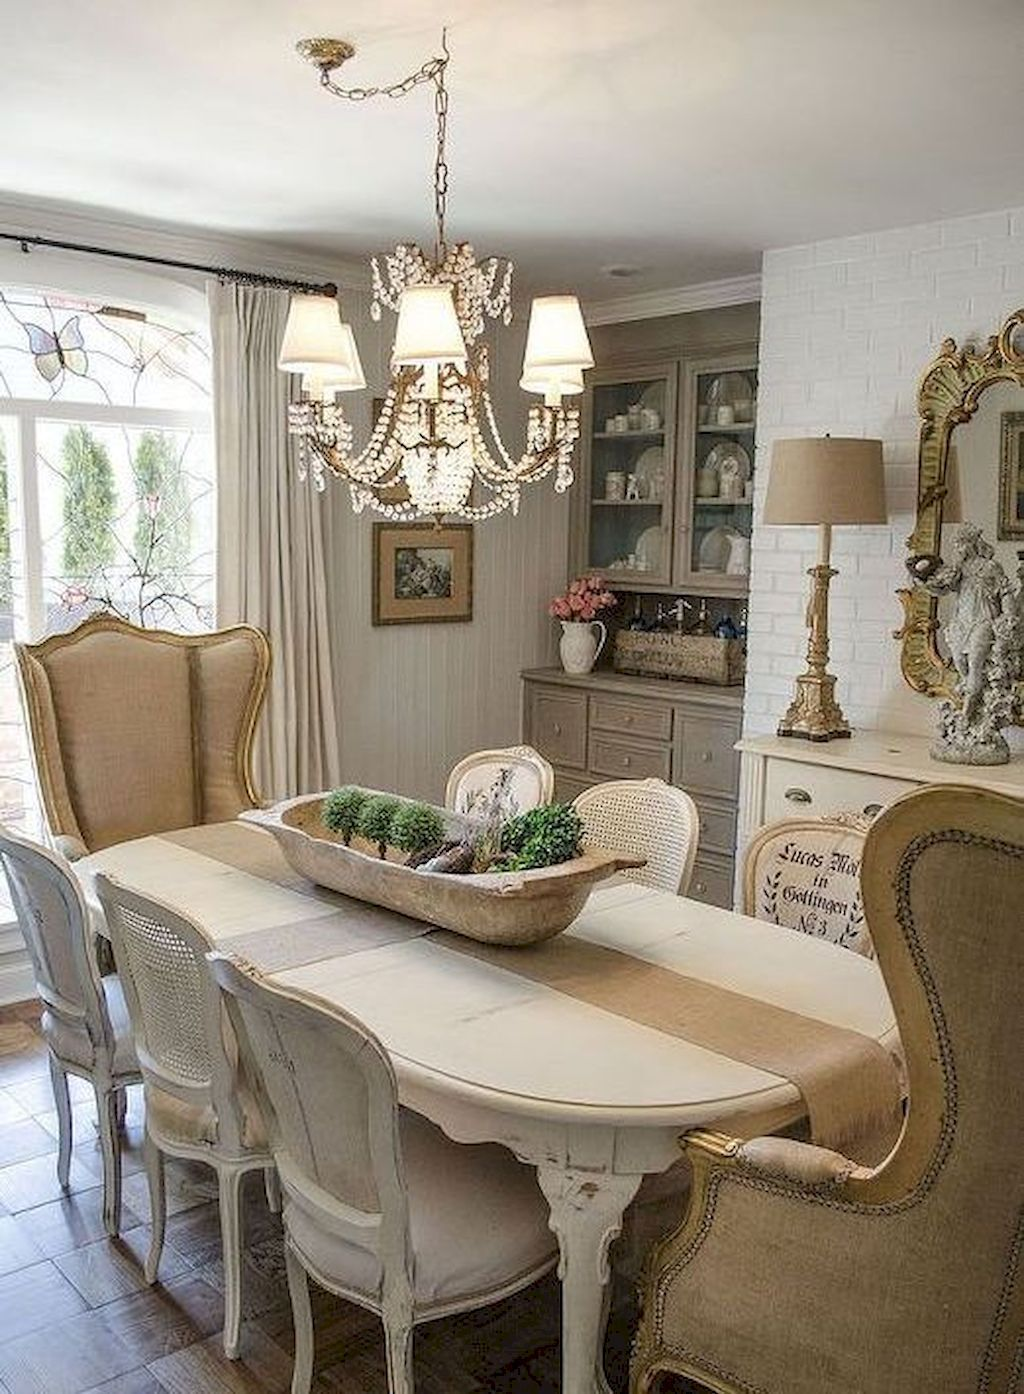 86 gorgeous french country living room decor ideas home favorites rh pinterest com